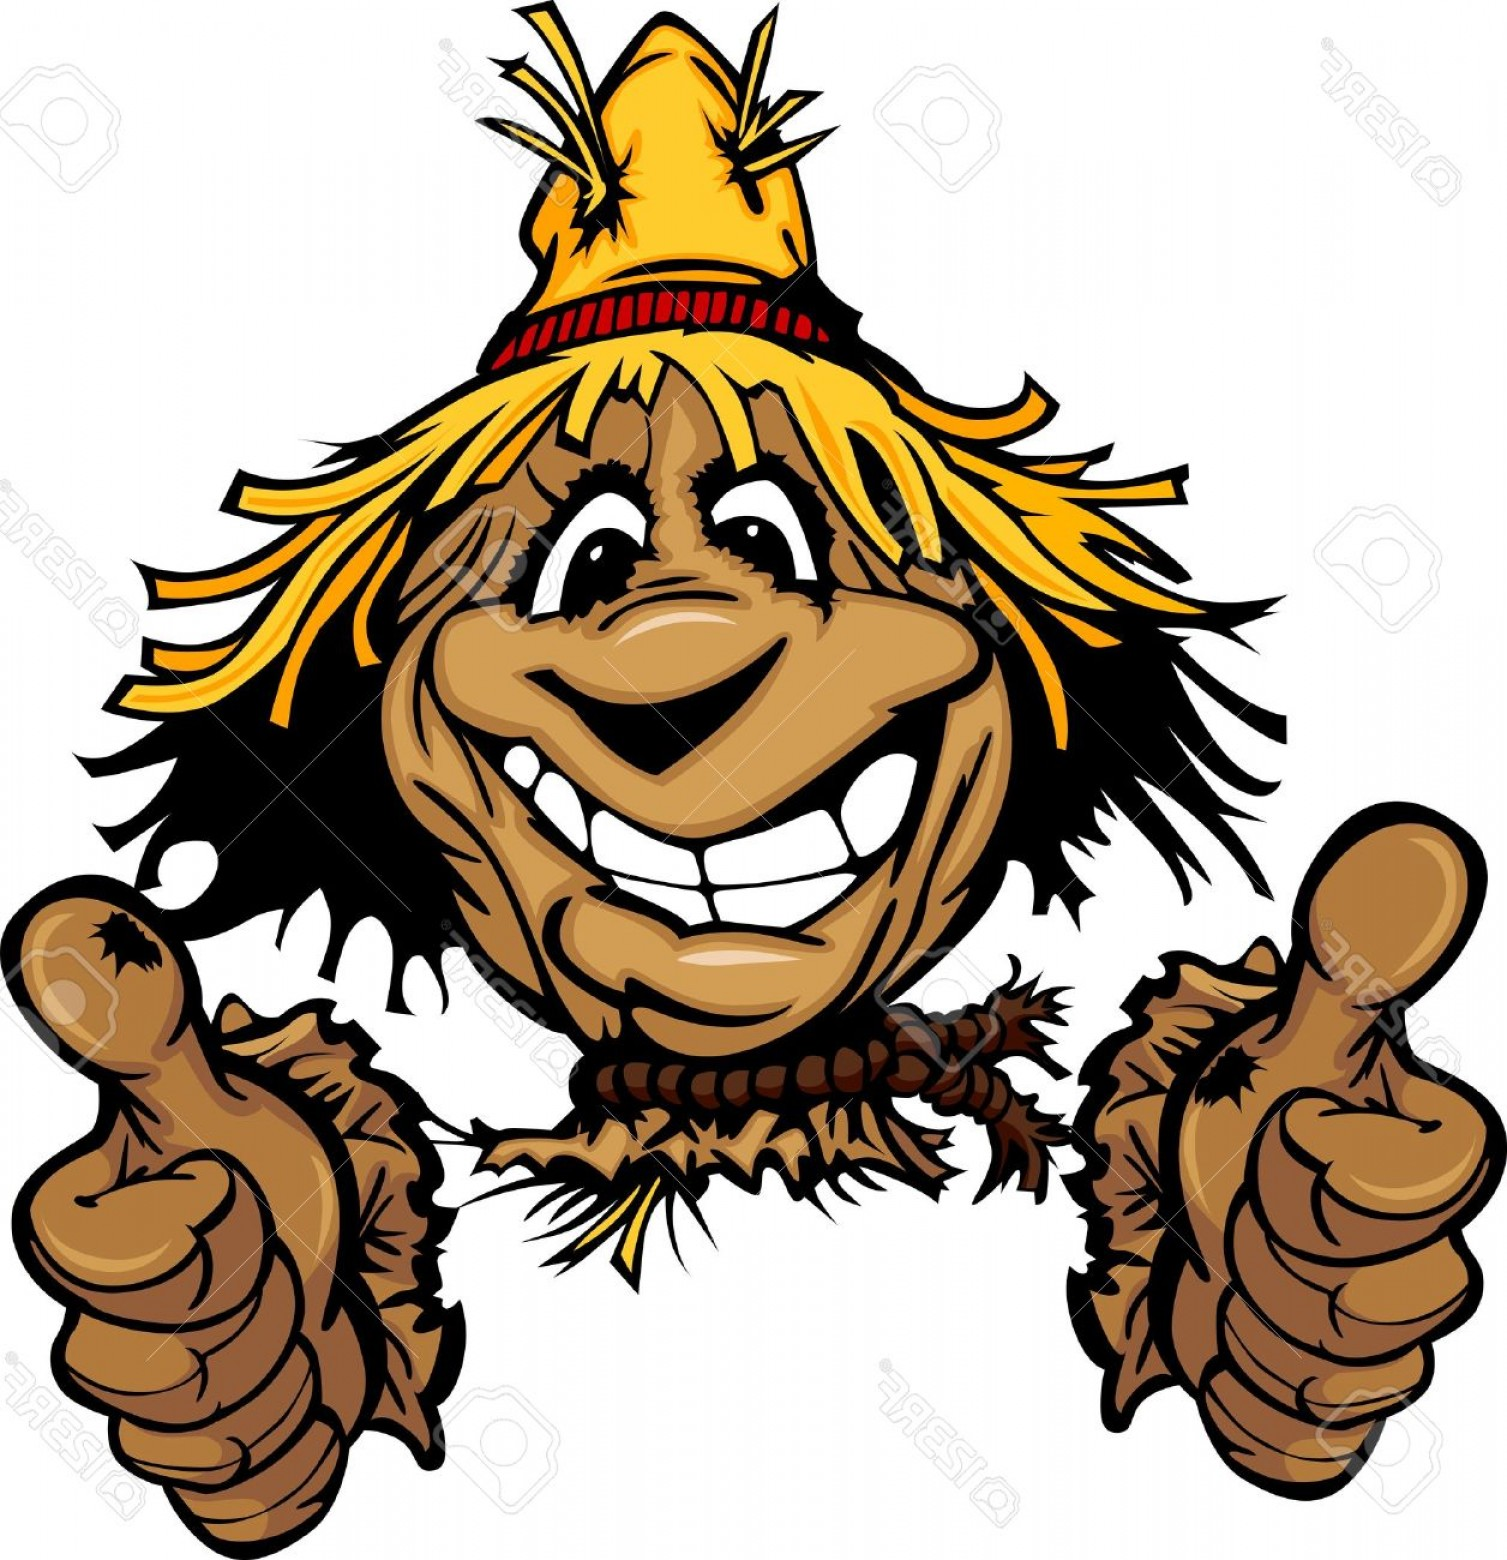 Scarecrow Vector Art: Photocartoon Scarecrow With Smiling Face Wearing Straw Hat Giving Thumbs Up Gesture Vector Image